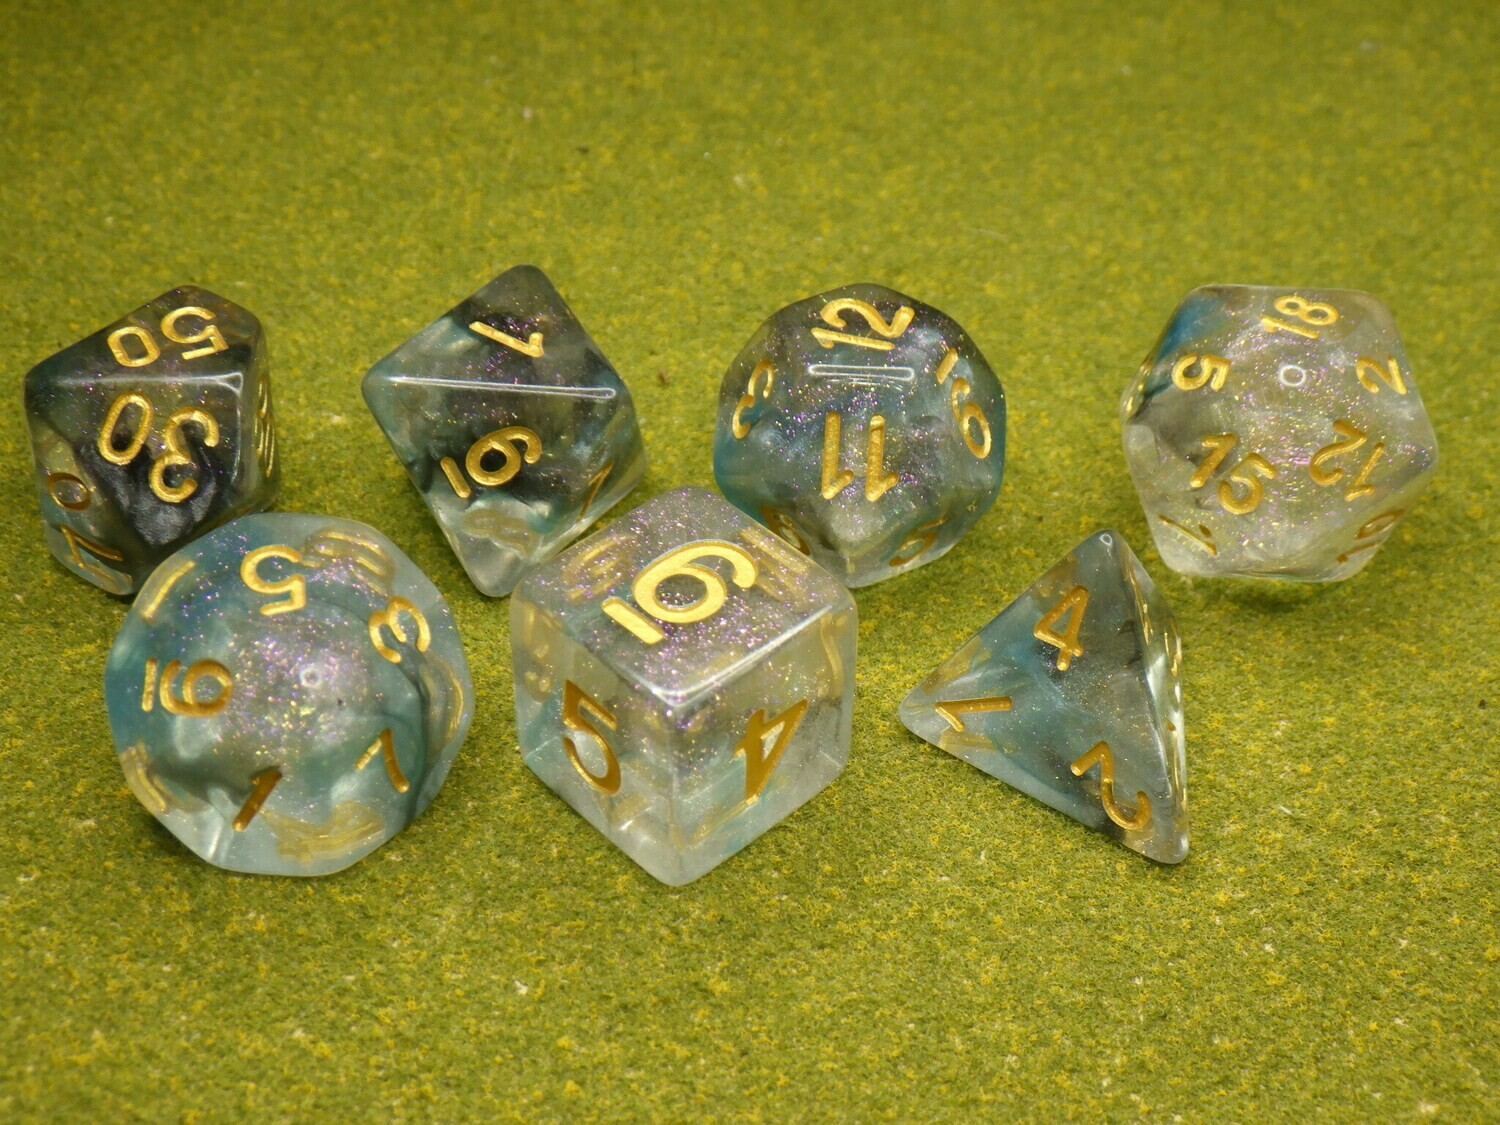 Luminous Shade 16mm Polyhedral 7 Dice Set Tabletop RPG CCG Board Games Counter Token Markers Decision Makers Roll Dungeon Pathfinder